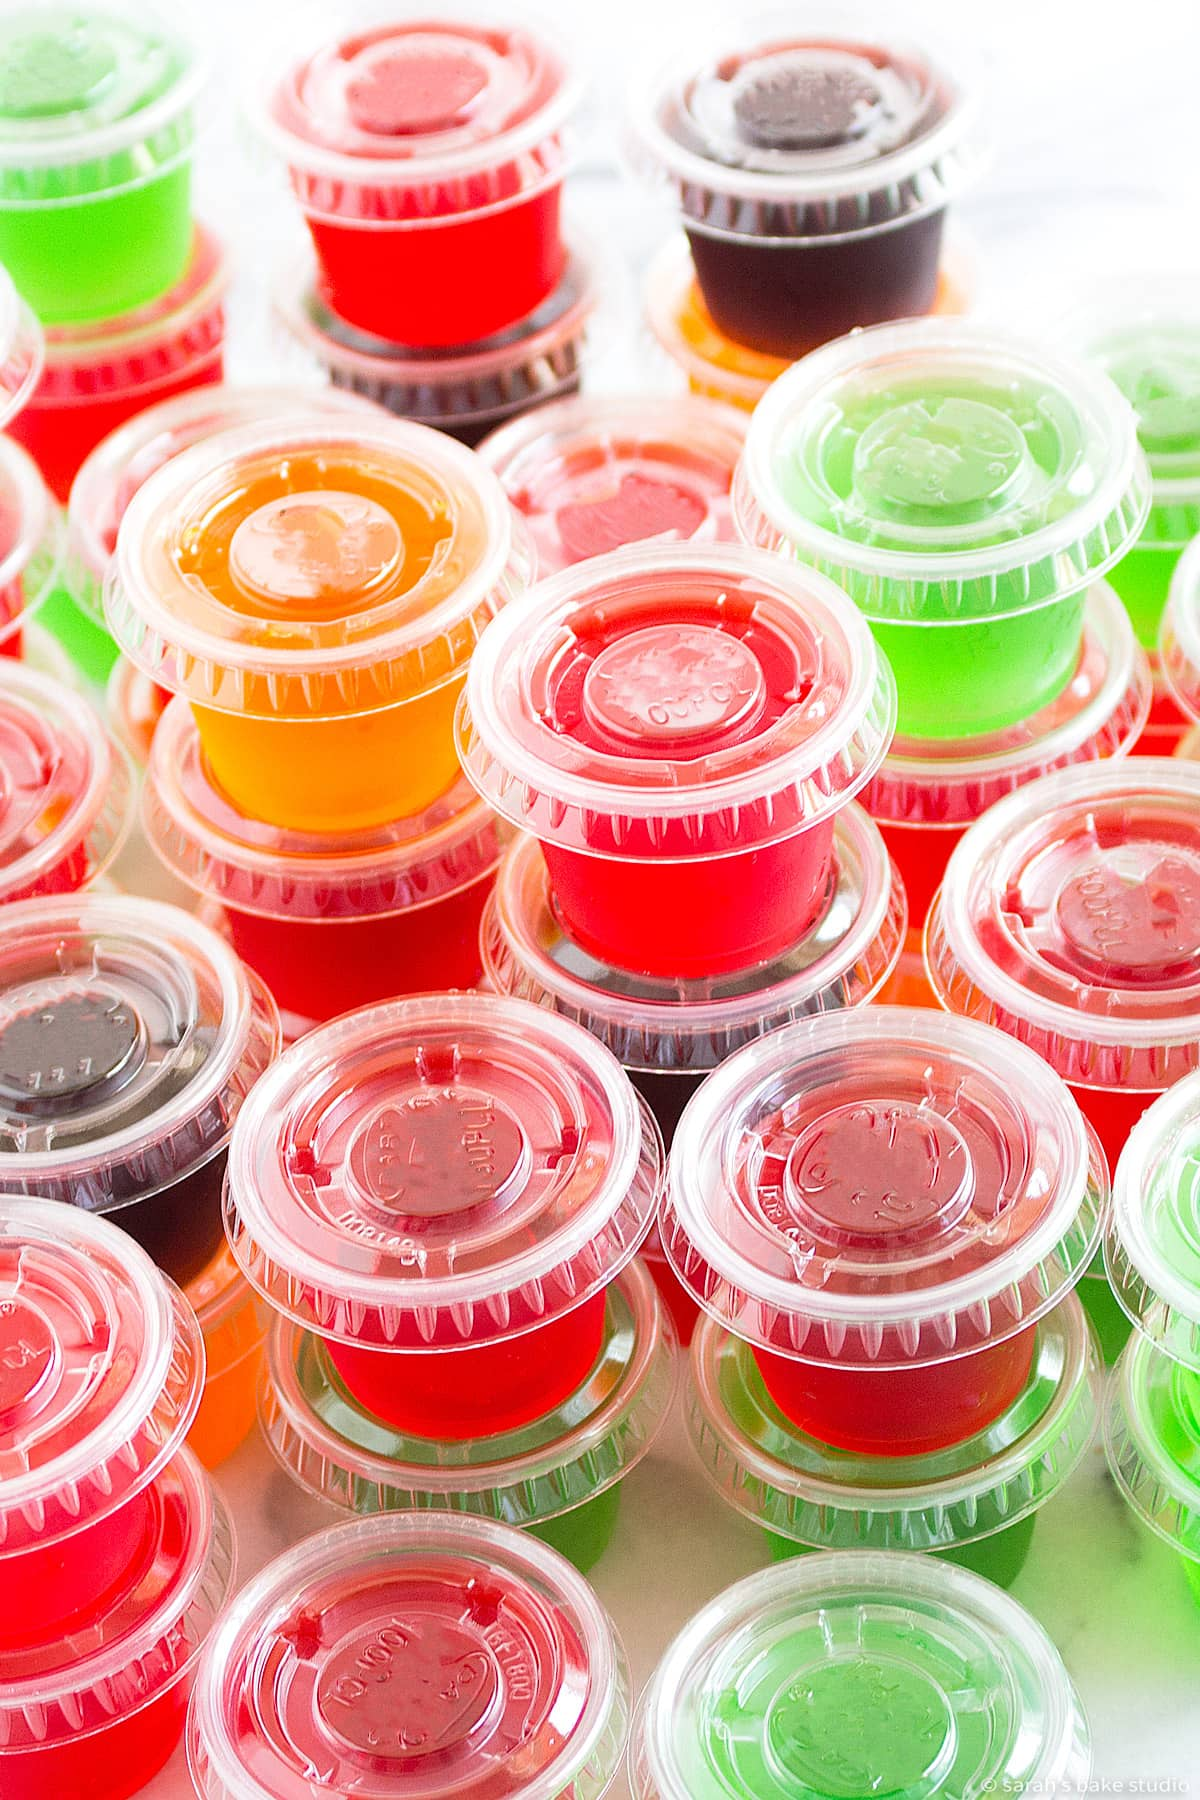 5 rock your socks jello shots in plastic one-ounce cups with lids